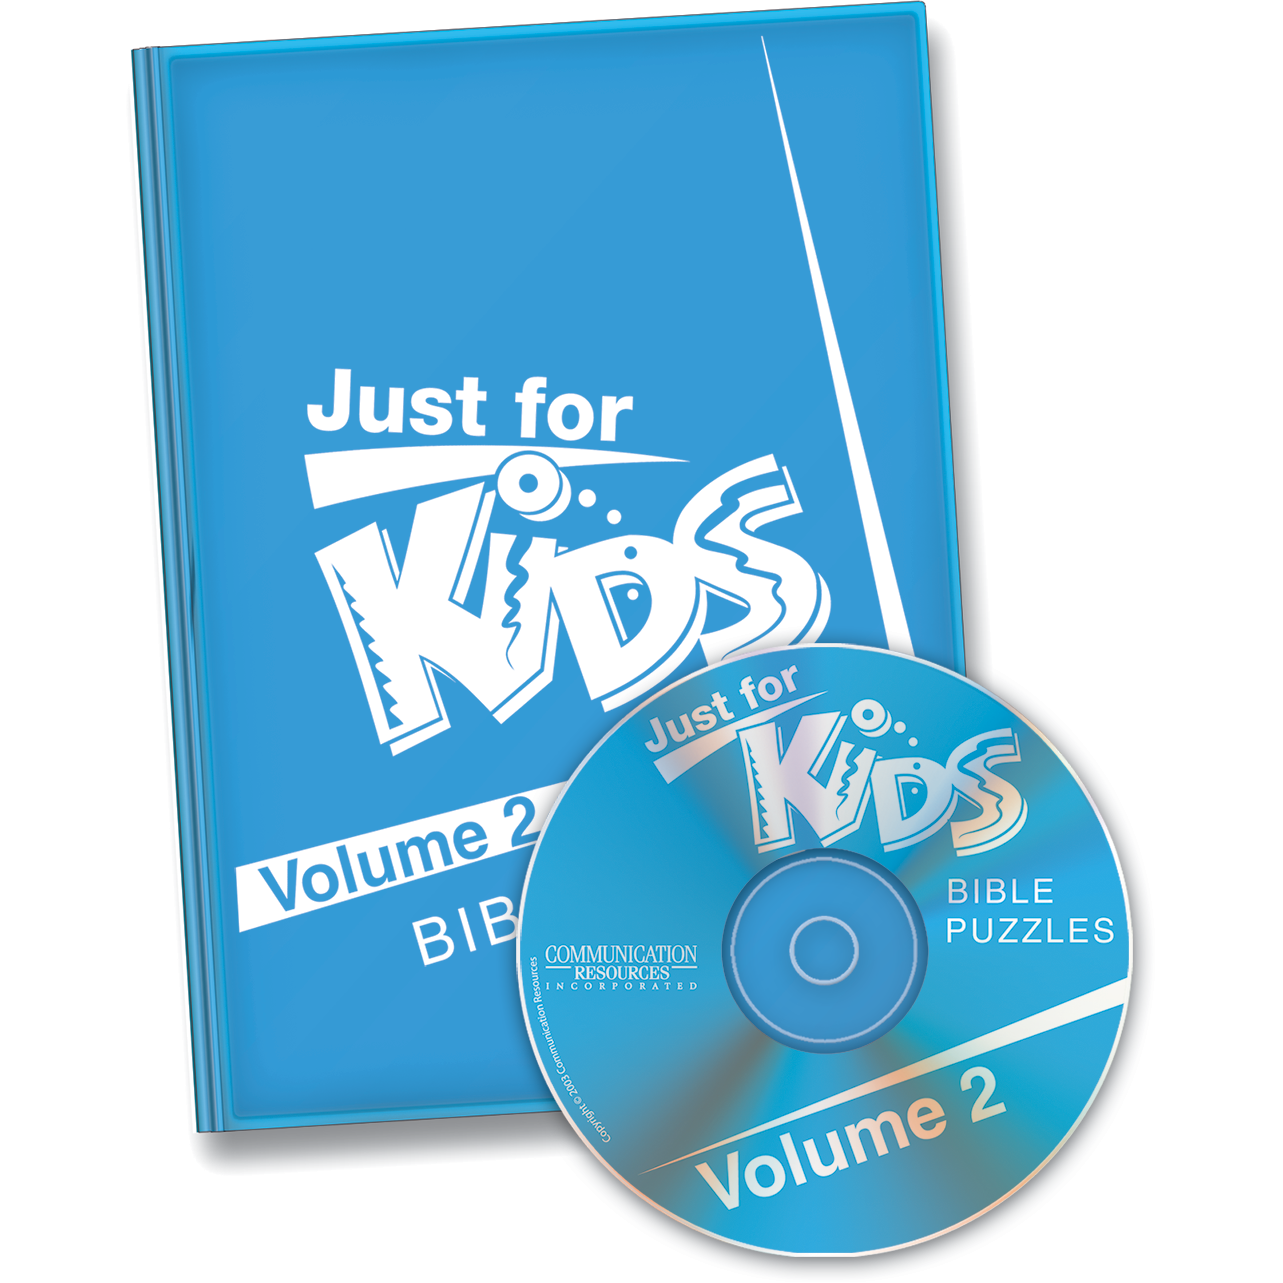 just for kids bible puzzles volume 2